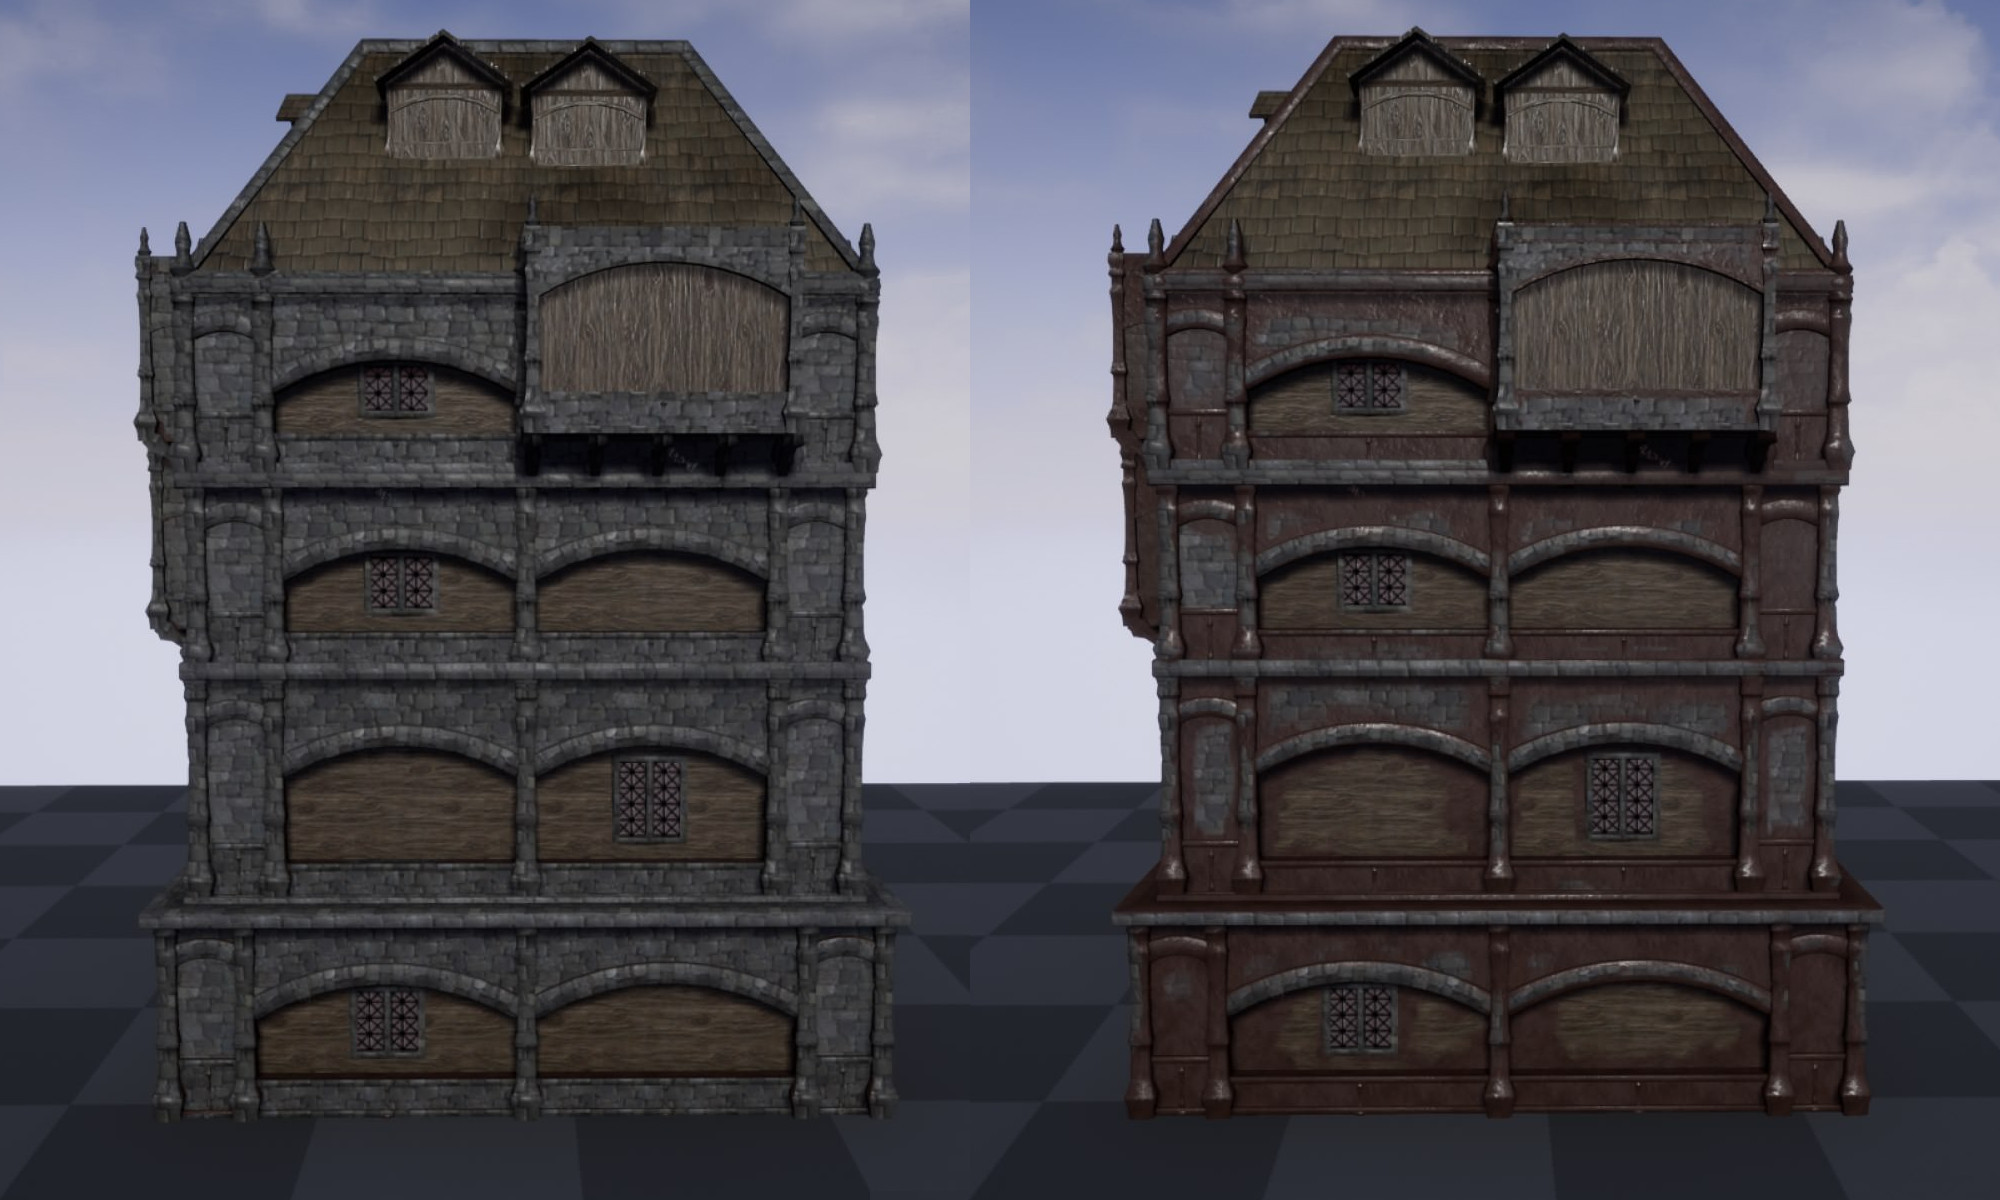 Dirt is applied by using the precalculated AO and height information to break up the tiling textures